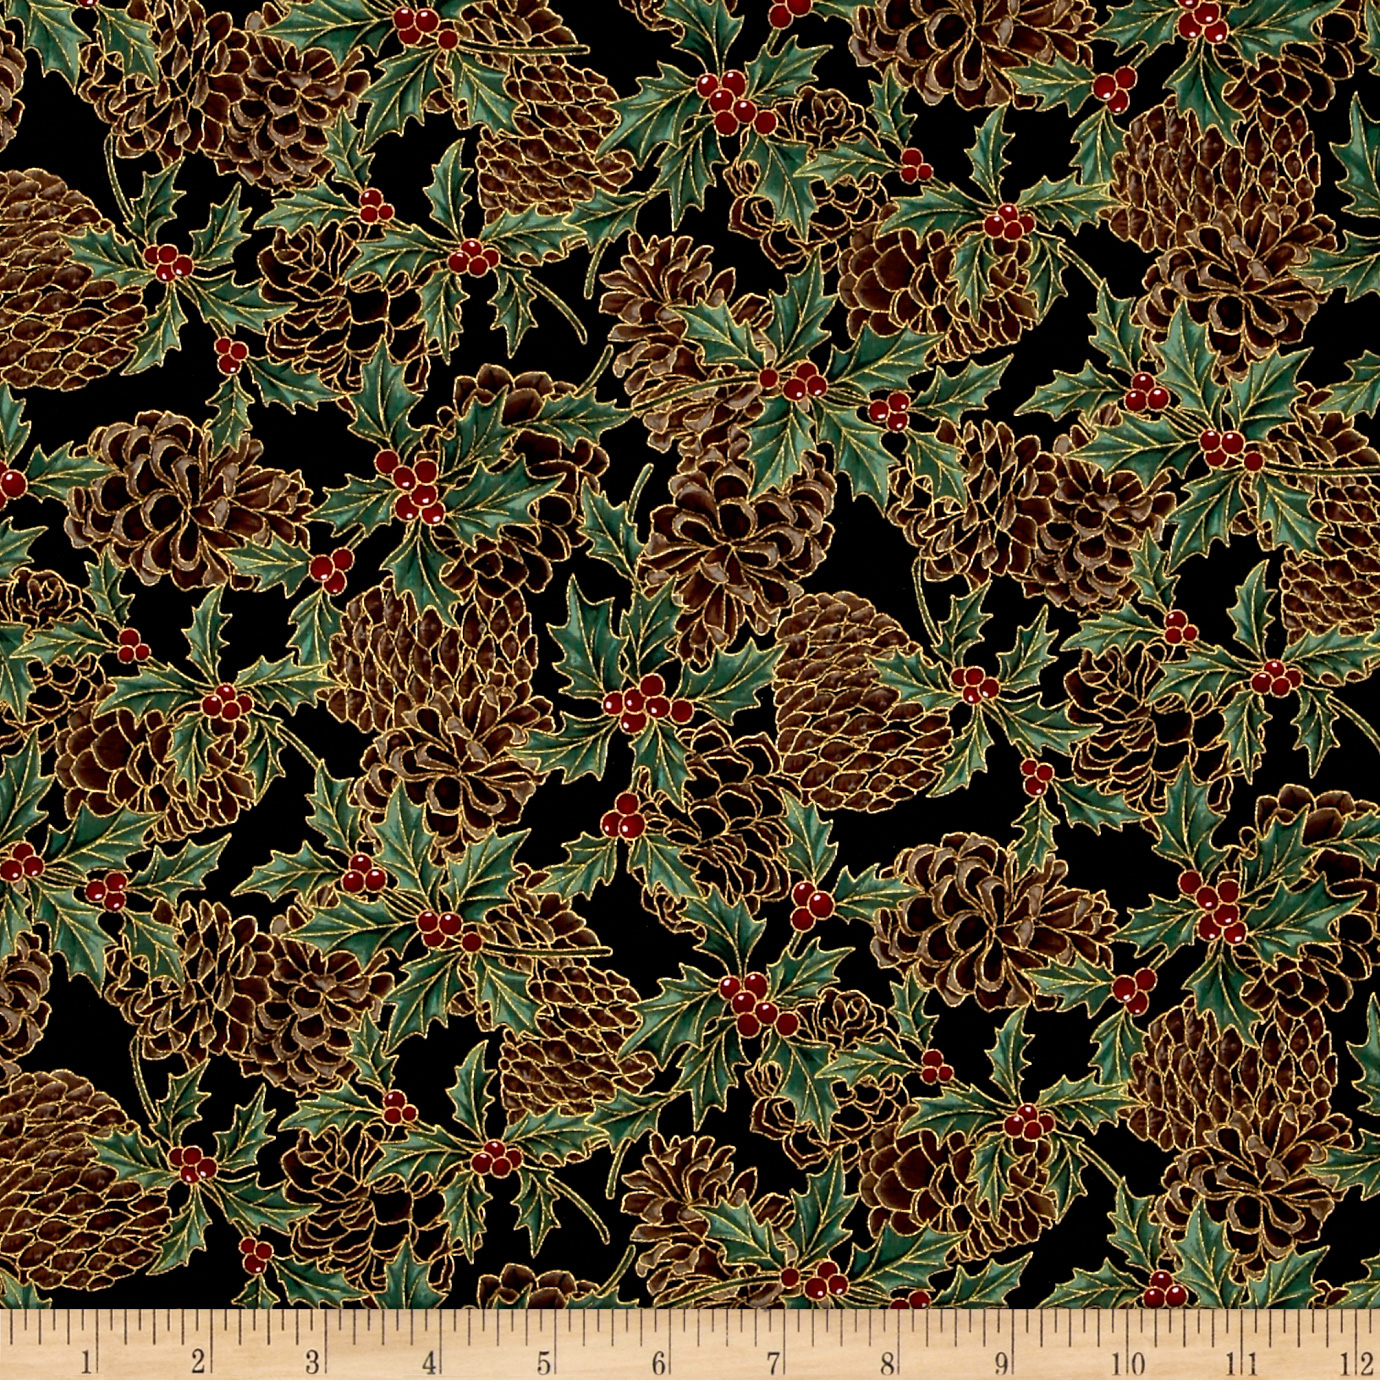 Berries and Blooms Metallic Pine Cones Black/Gold Fabric